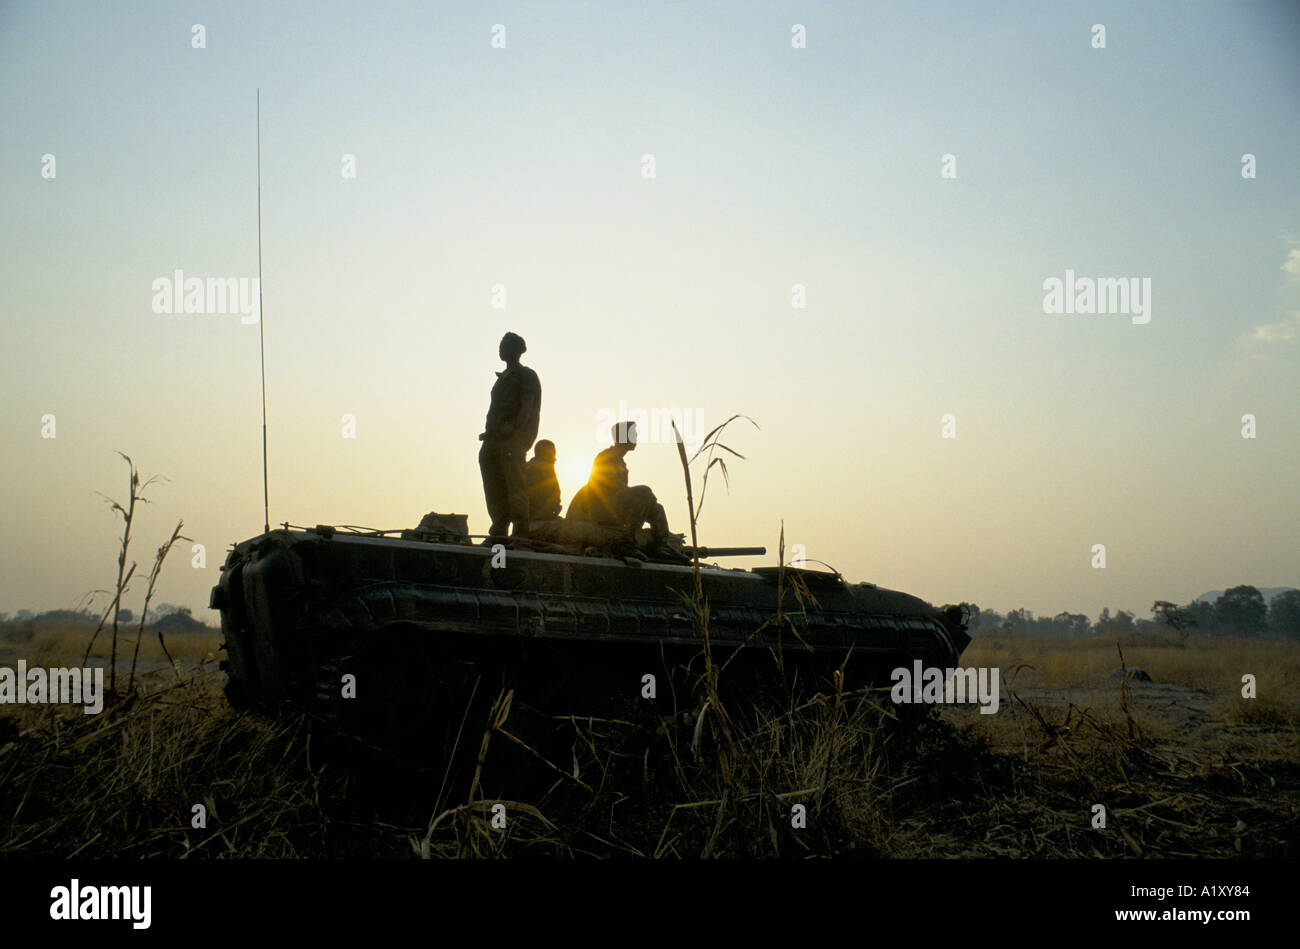 ANGOLA CIVIL WAR AUG 1993 SILHOUETTES OF MEN ON A TANK - Stock Image